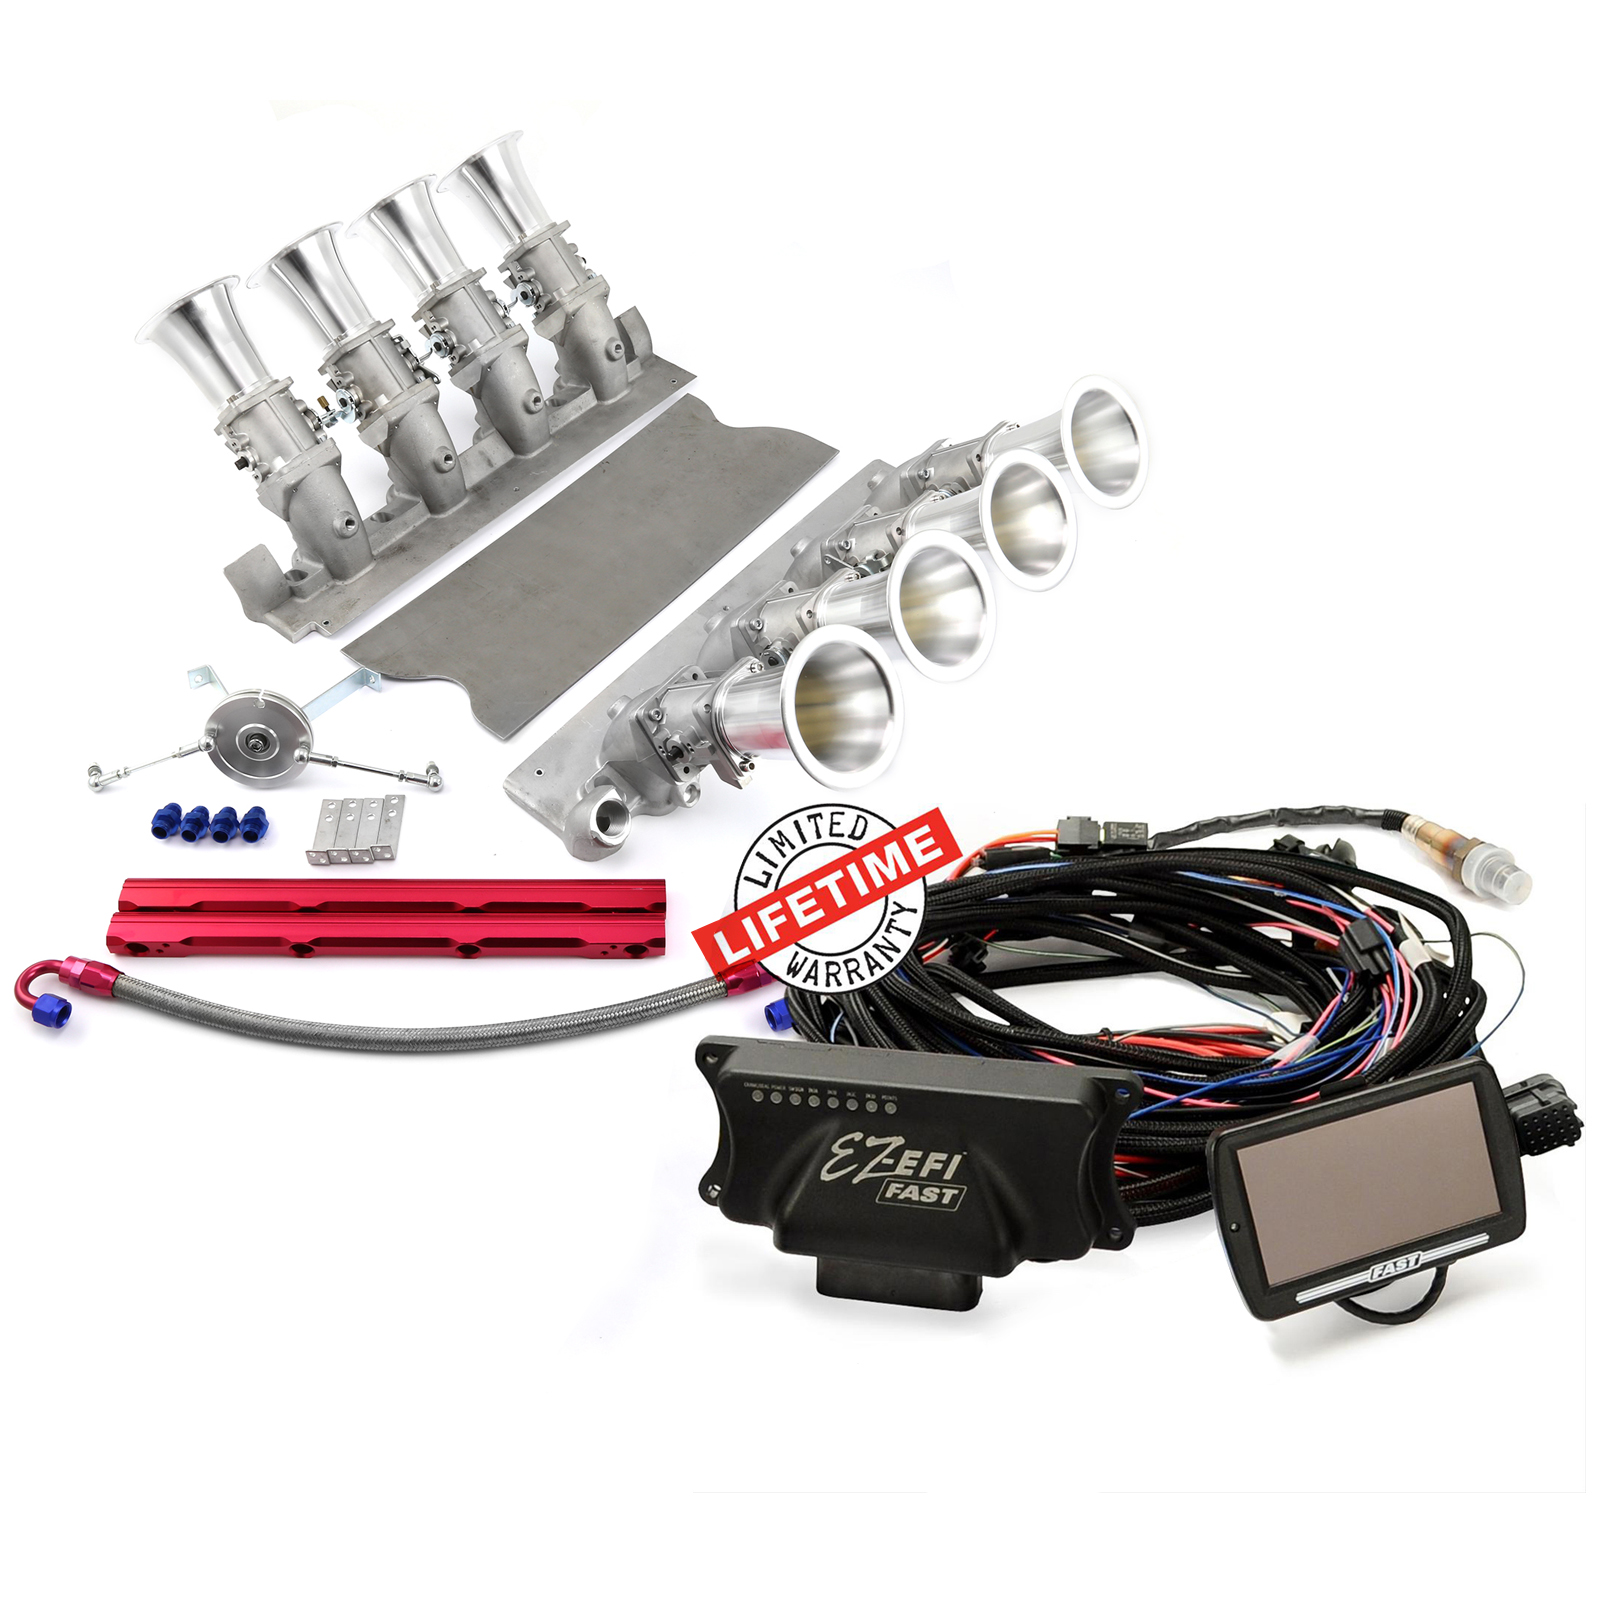 Ford 302 351C Manifold 30404 FAST EZ-EFI 2.0 Self-Tuning Fuel Injection System